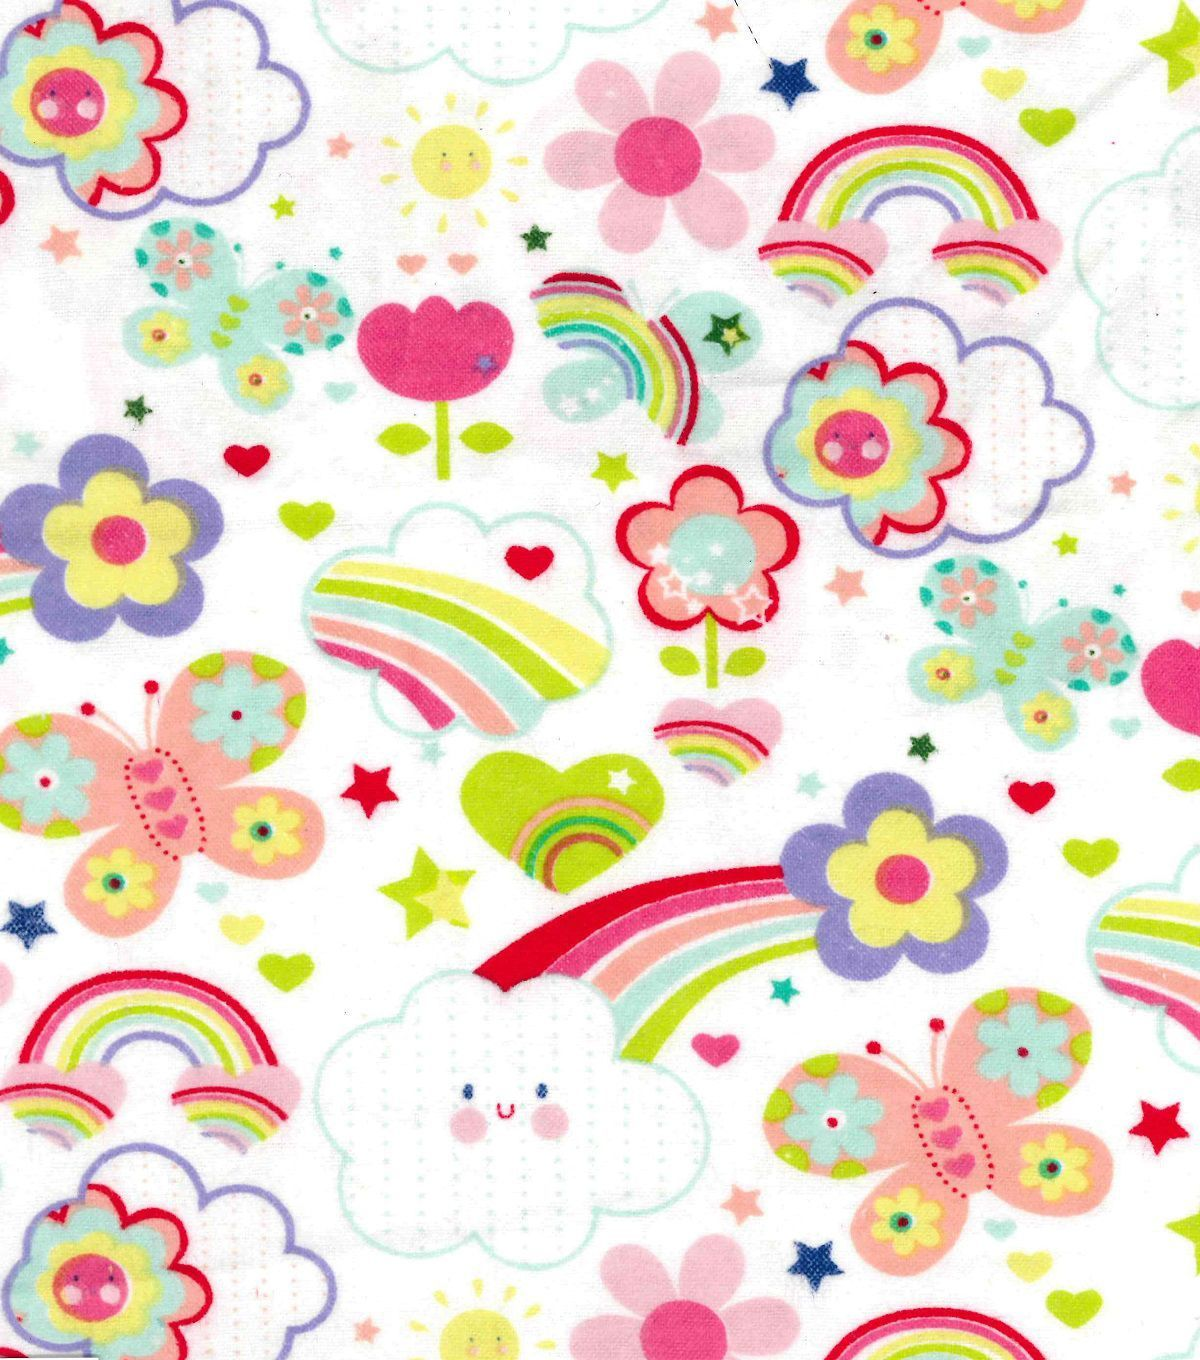 Pin By Storytelling On Happy Fabric: Snuggle Flannel Fabric-Happy Rainbows